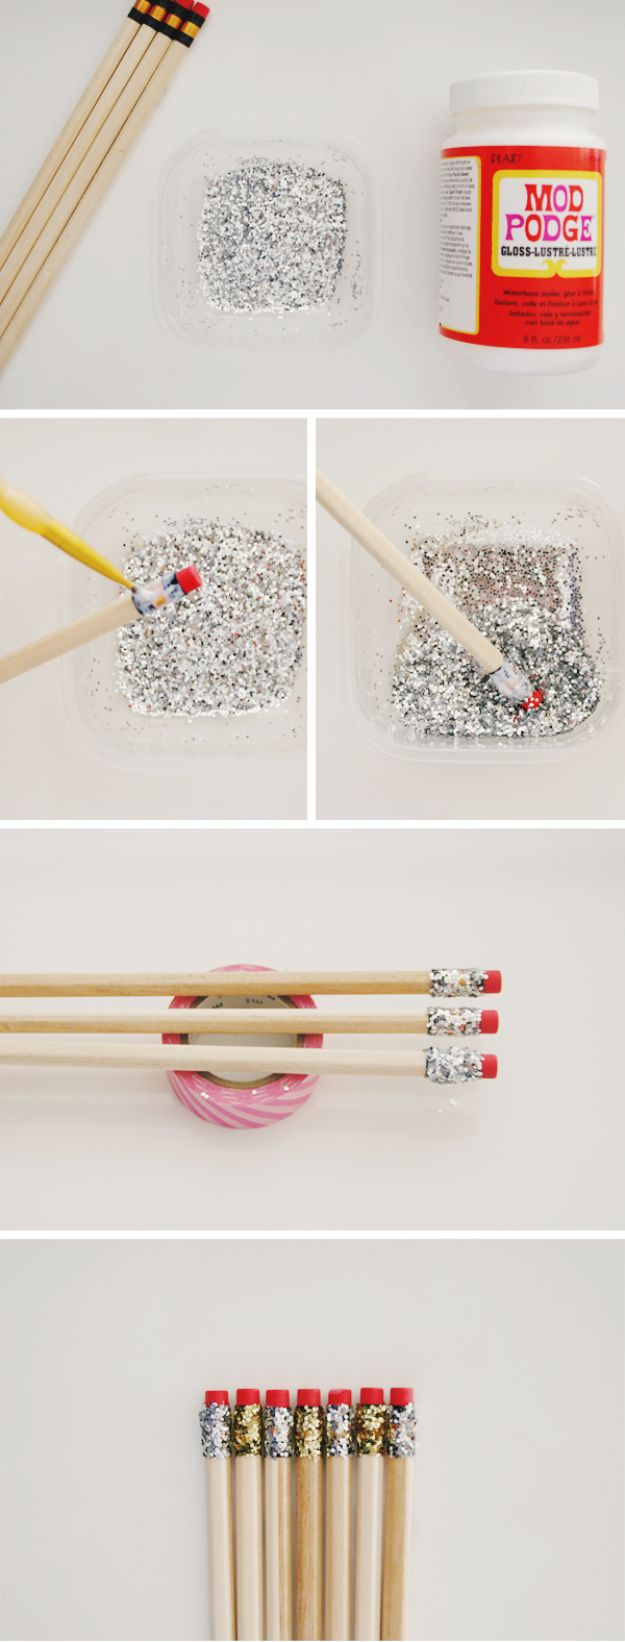 DIY Ideas WIth Glitter - DIY Glitter Pencils - Easy Crafts and Projects for Decoration, Gifts, and Bedroom Decor - How To Make Ombre, Mod Podge and Glitter Mason Jar Gift Ideas For Teens - Easy Clothes and Makeup Crafts For Teenagers http://diyprojectsforteens.com/glitter-crafts-ideas